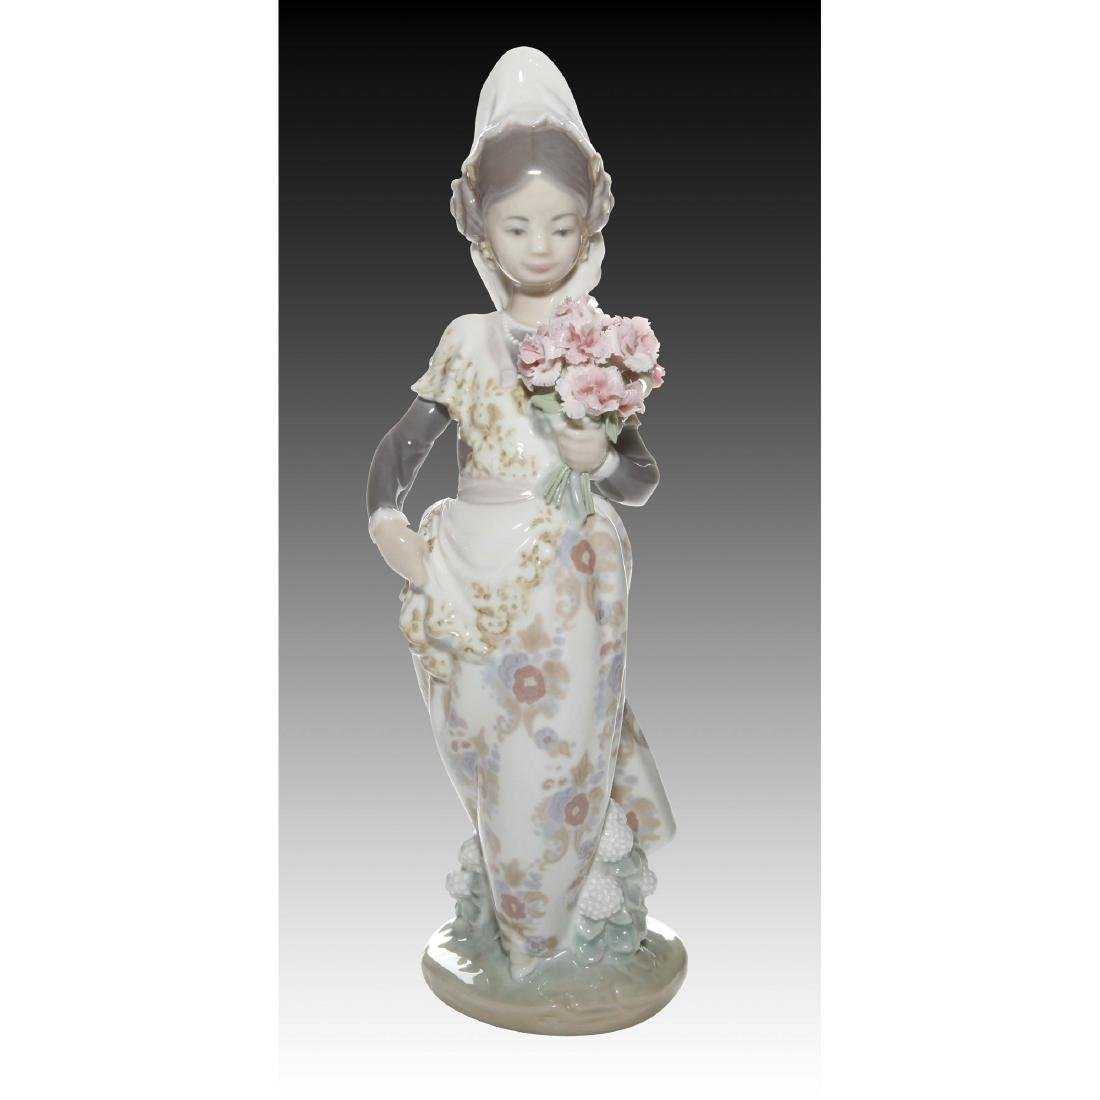 LLADRO VALENCIAN LADY FIGURINE 1304 RETIRED 2004